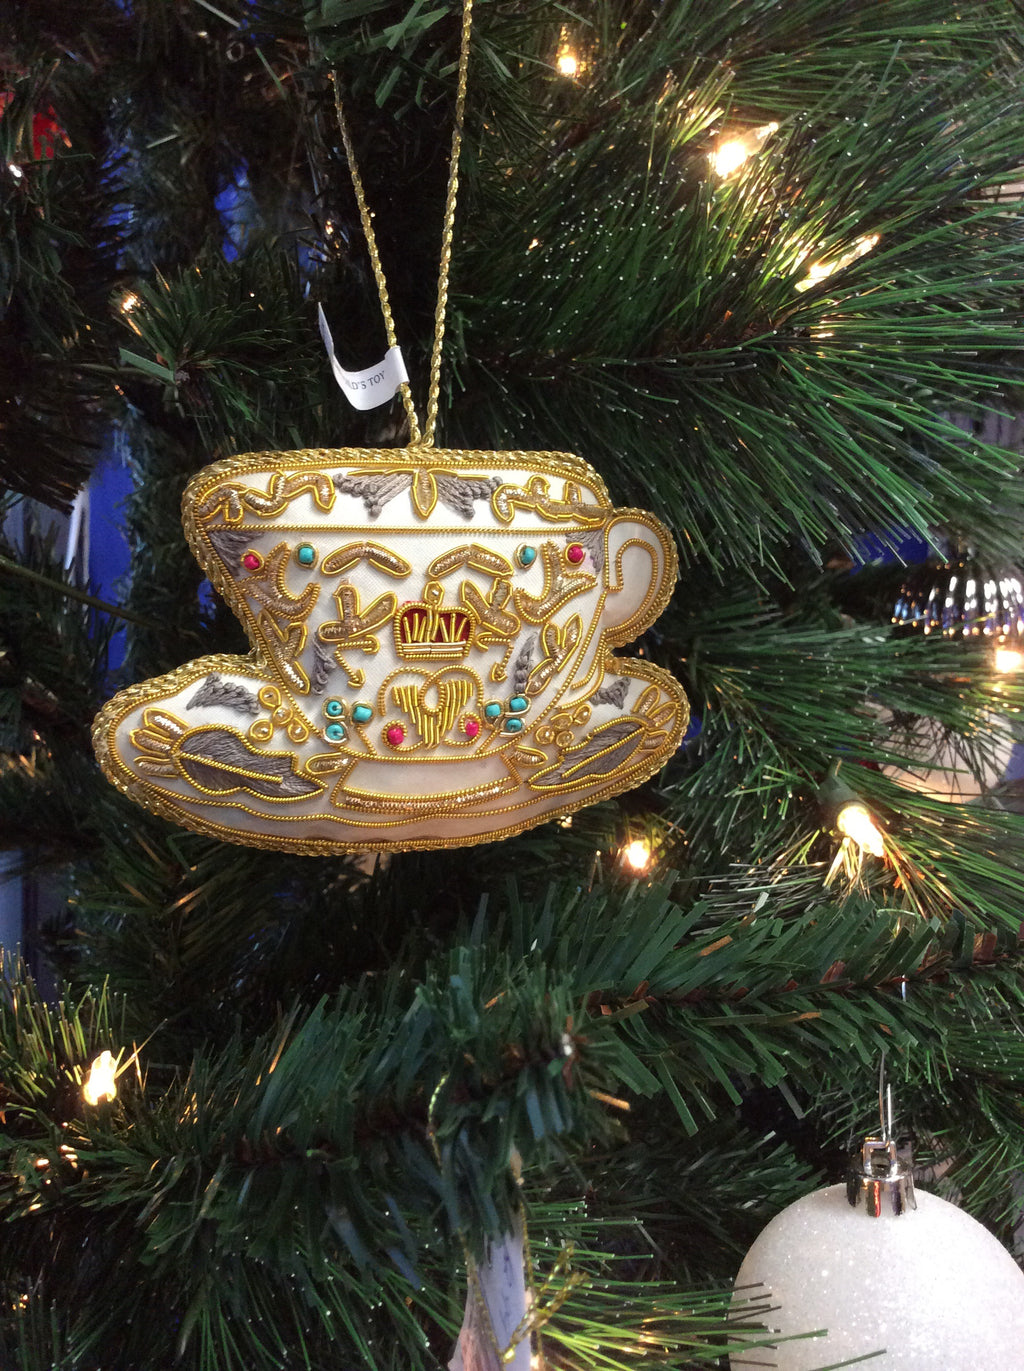 Royal Teacup Christmas Ornament